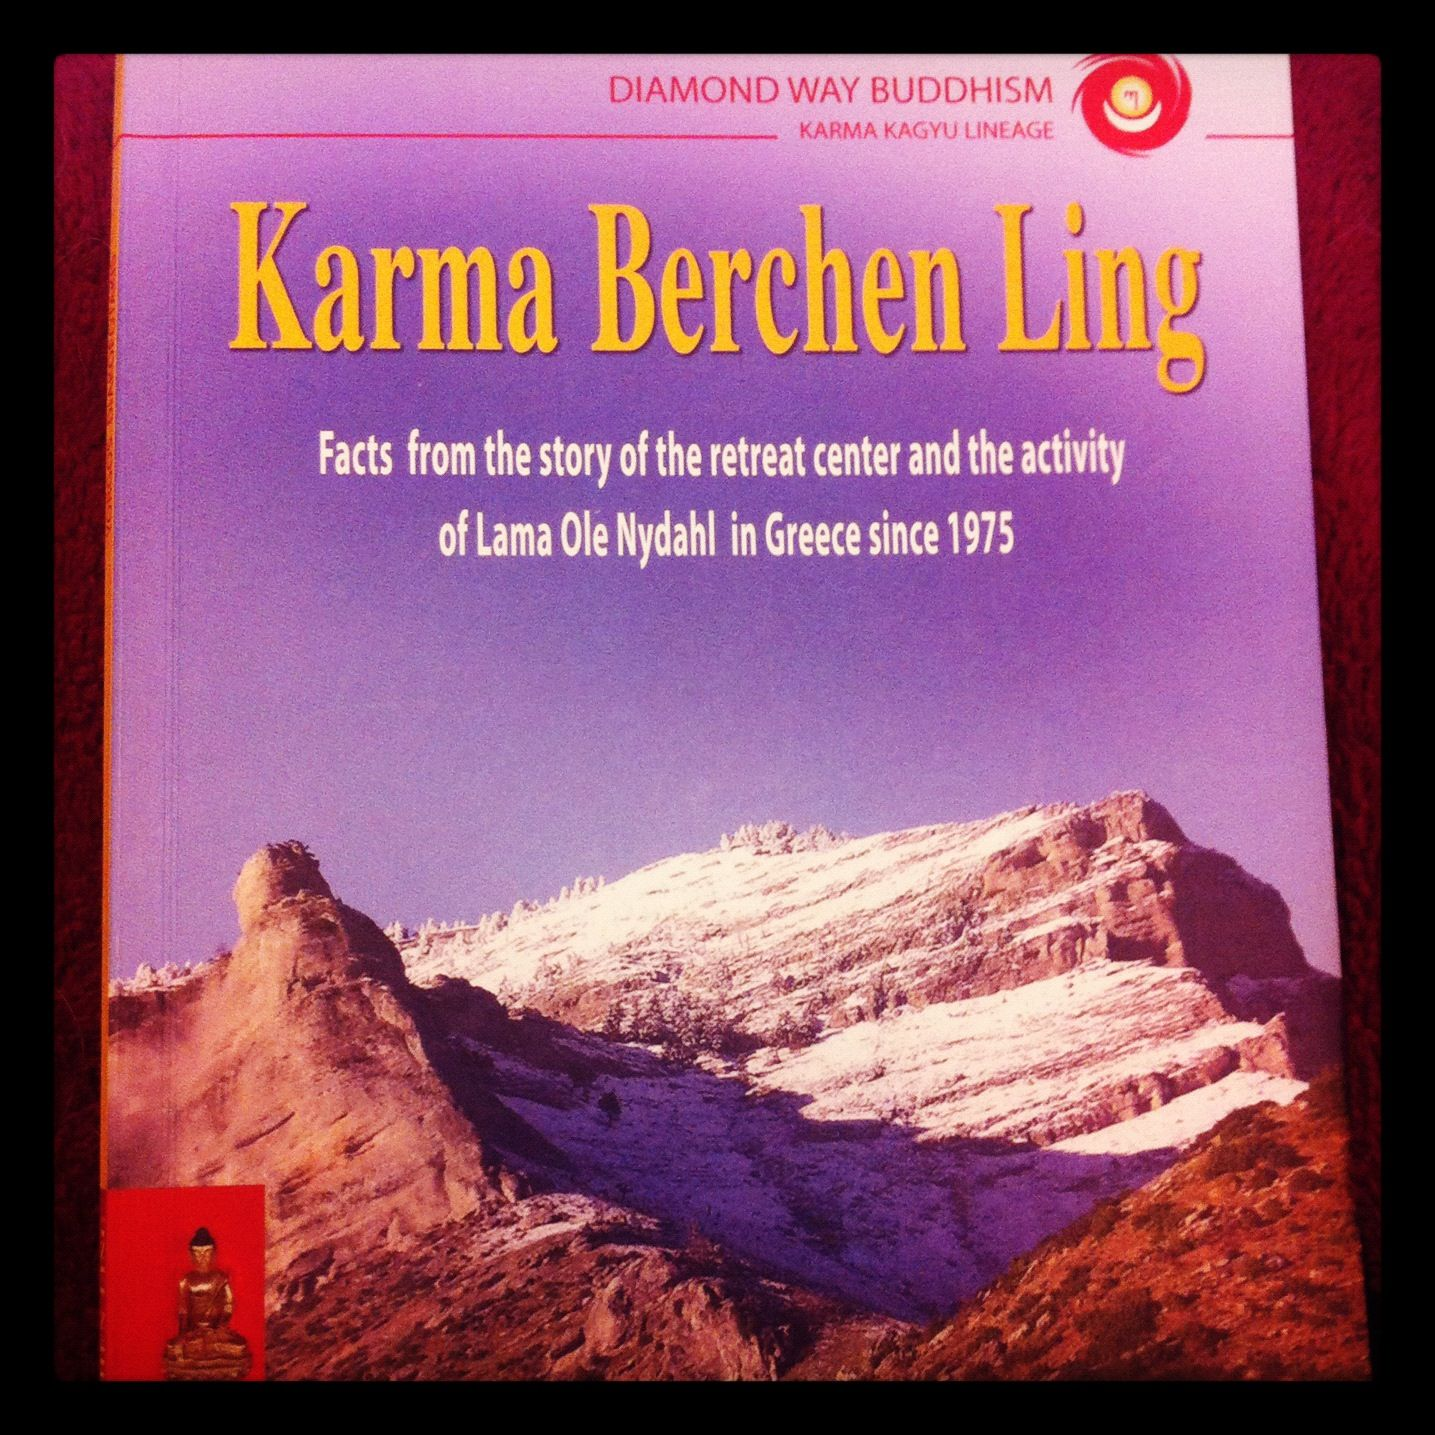 "Finished a very nice, little book about the history of Diamond Way Buddhism in Greece and the history of ""Karma Berchen Ling"", which is the retreat center in Greece. A impressive story with lot of obstacles they had to face in Greece, but in the end they prevailed."